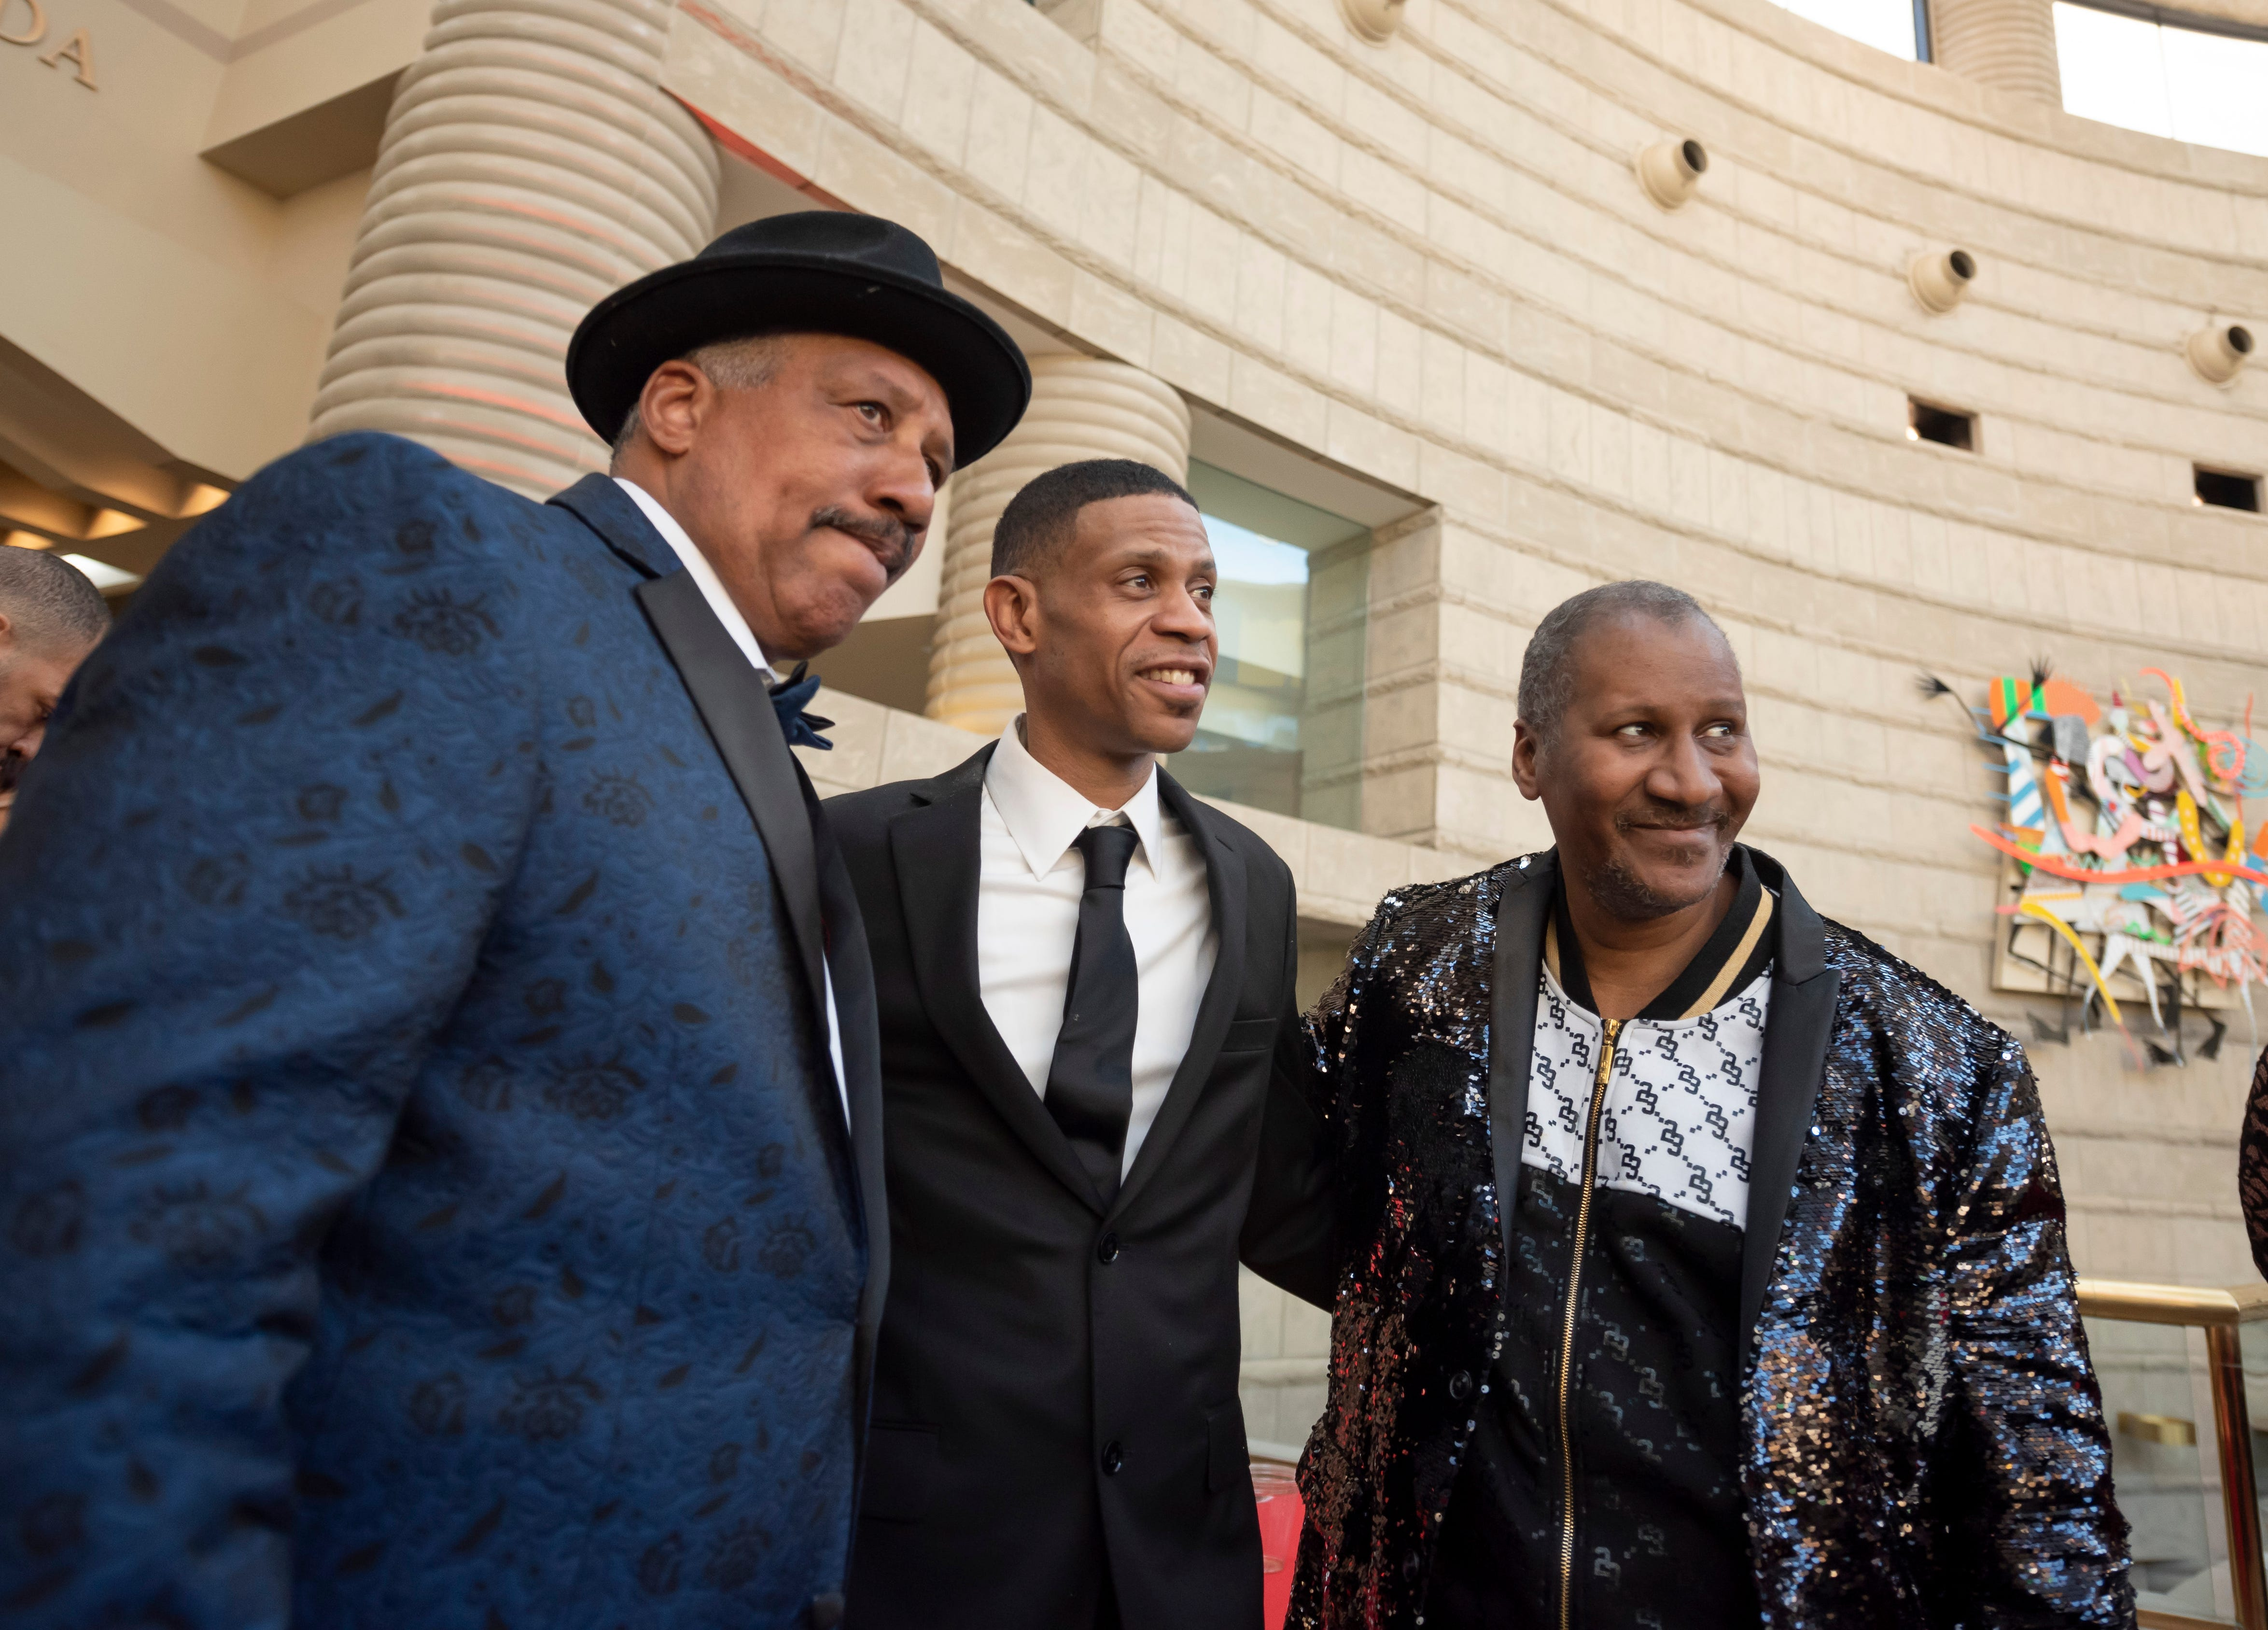 """Three of Aretha Franklin's son, Edward, Kecalf, and Clarence, pose for photos during a reception prior to the premiere of the Aretha Franklin concert film """"Amazing Grace"""" at the Charles H. Wright Museum of African American History in Detroit, Monday evening."""